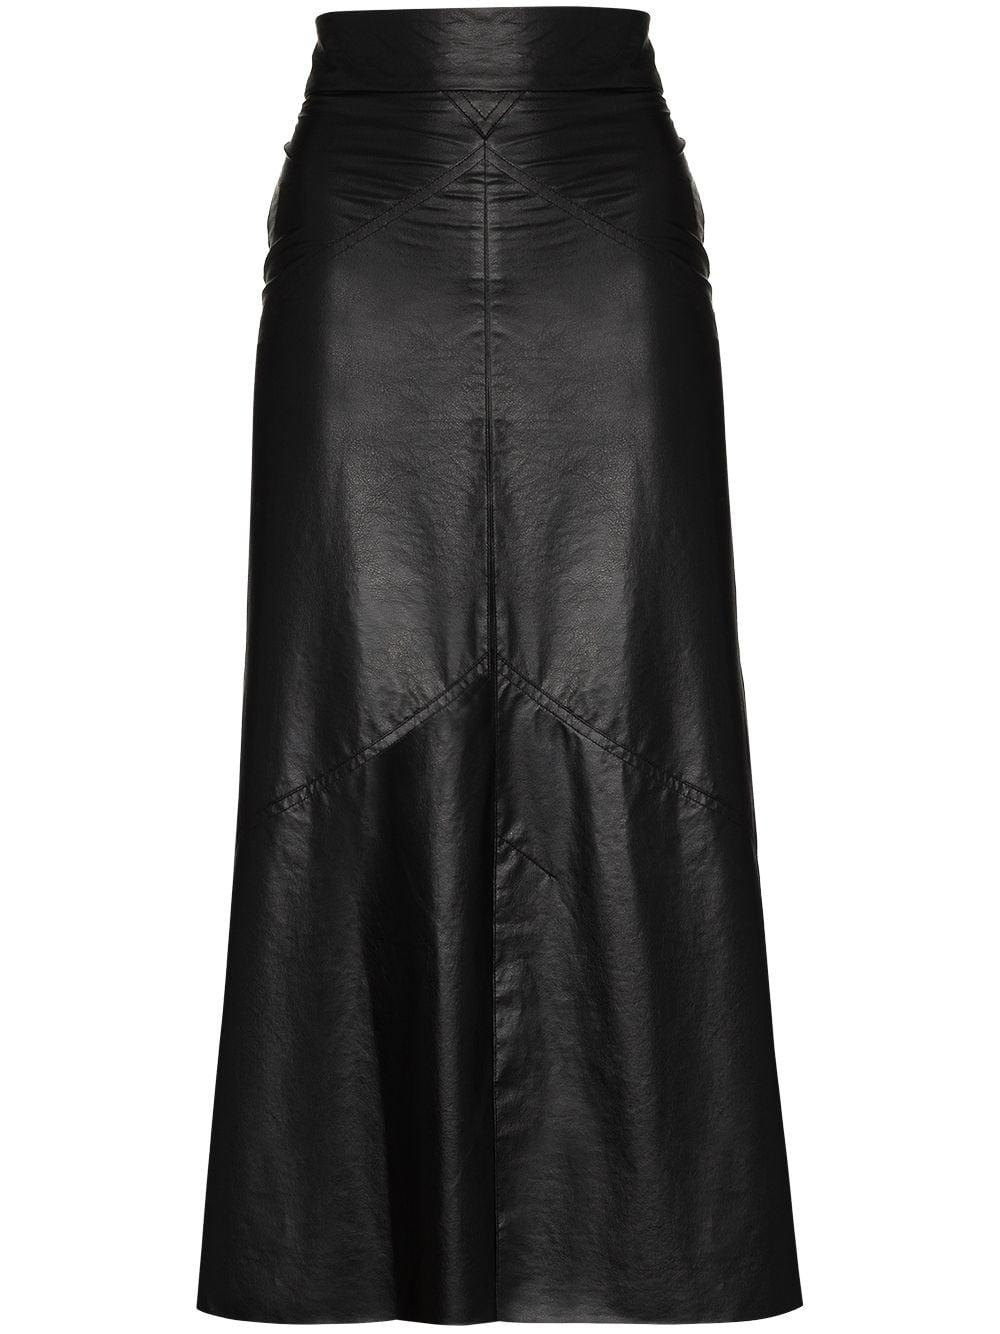 Domi Faux Leather Skirt